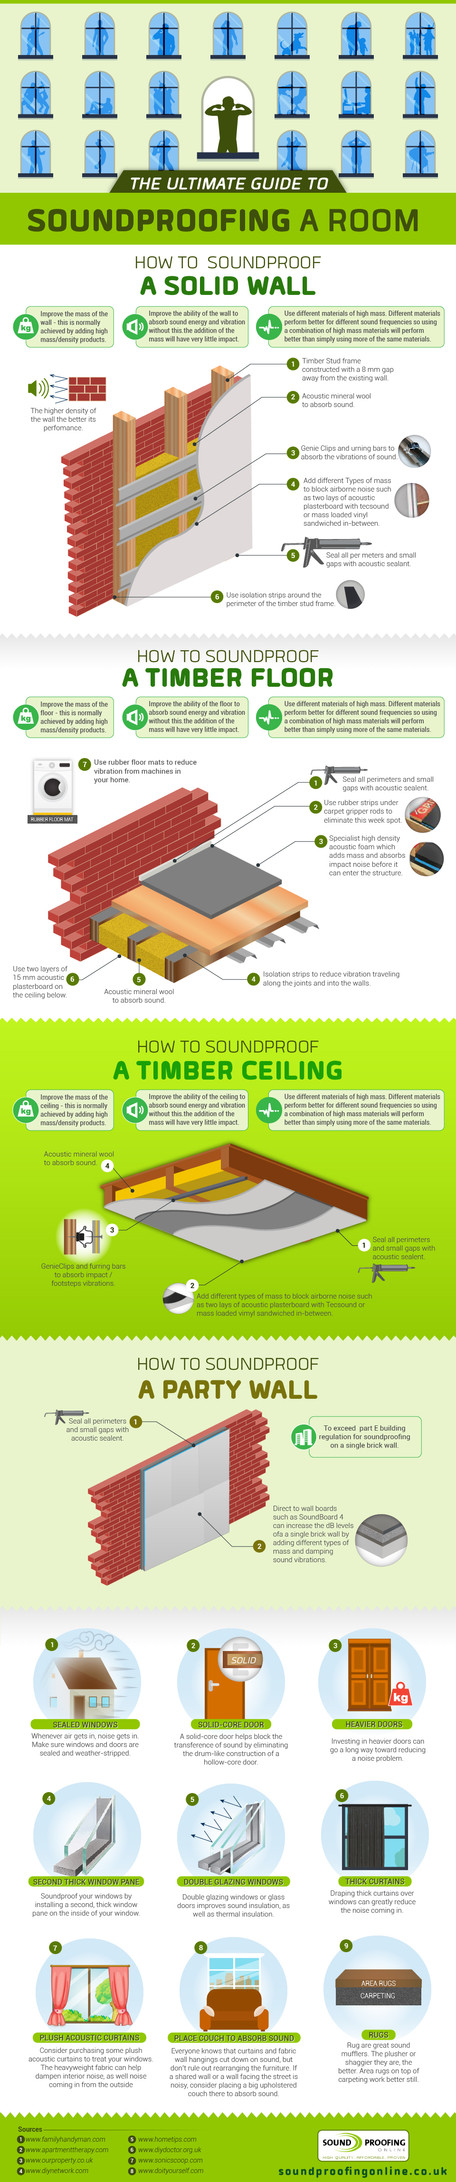 The Ultimate Guide to Sound Proofing a Room